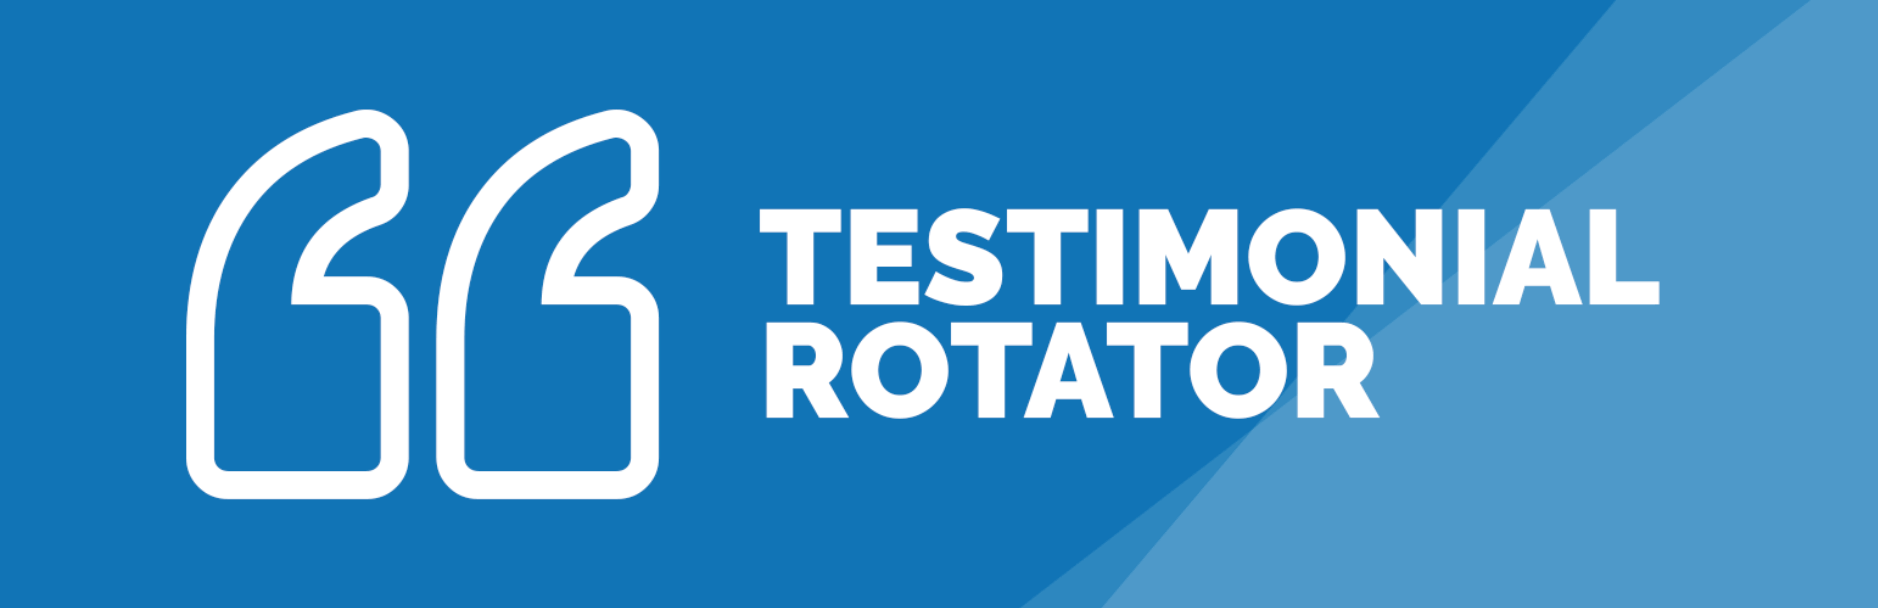 Testimonial Rotator Wp plugin